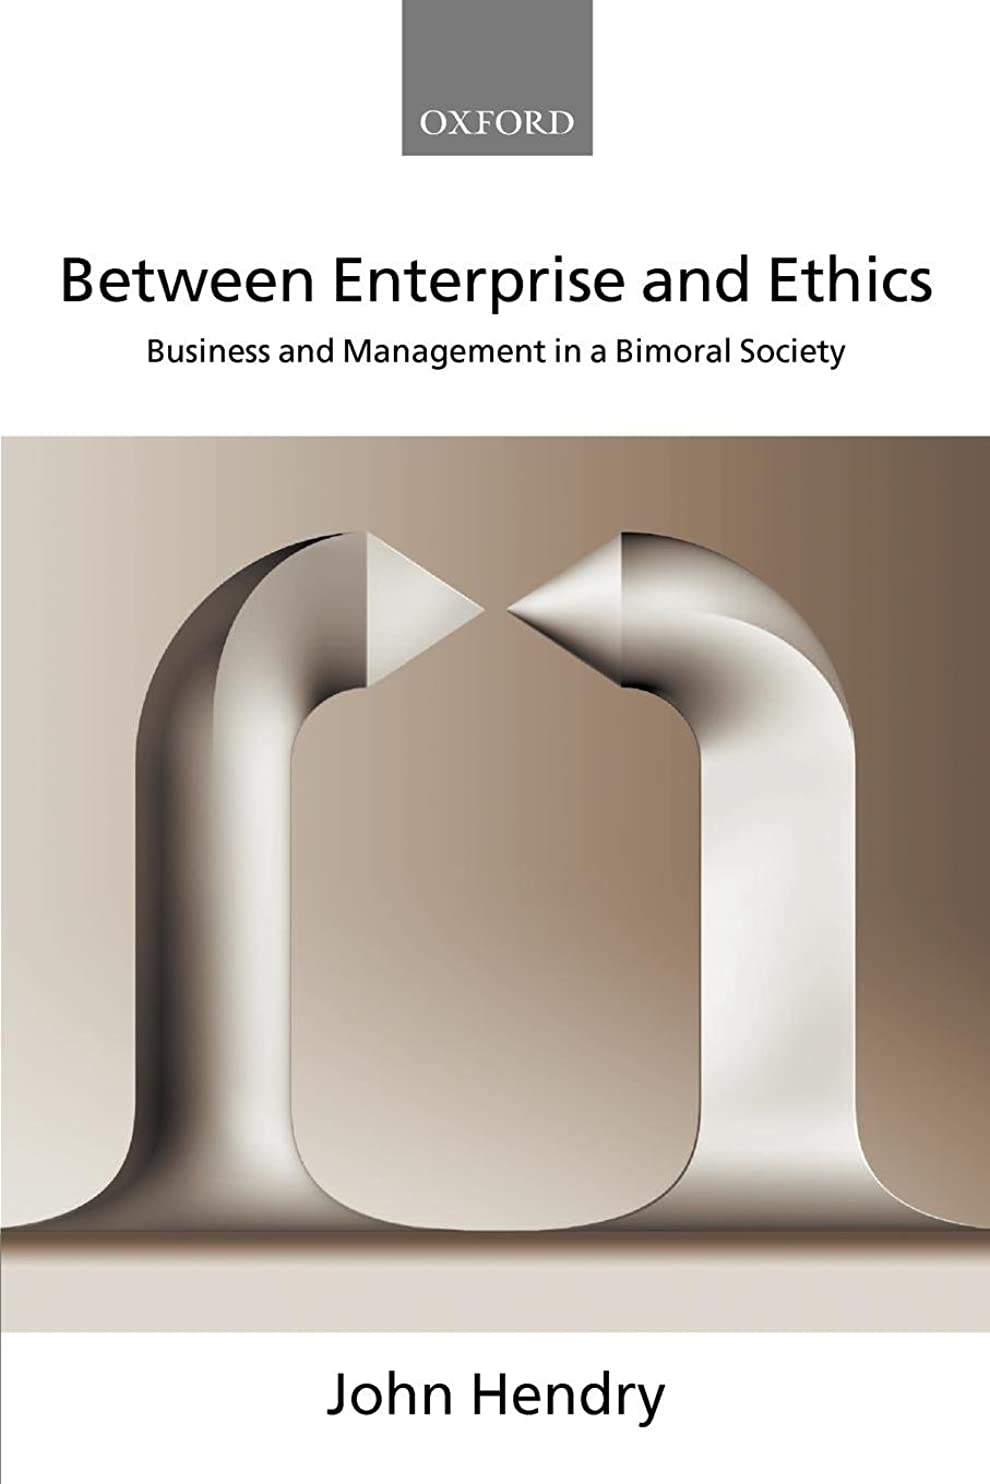 ギャロップ謝罪するバーゲンBetween Enterprise and Ethics: Business and Management in a Bimoral Society